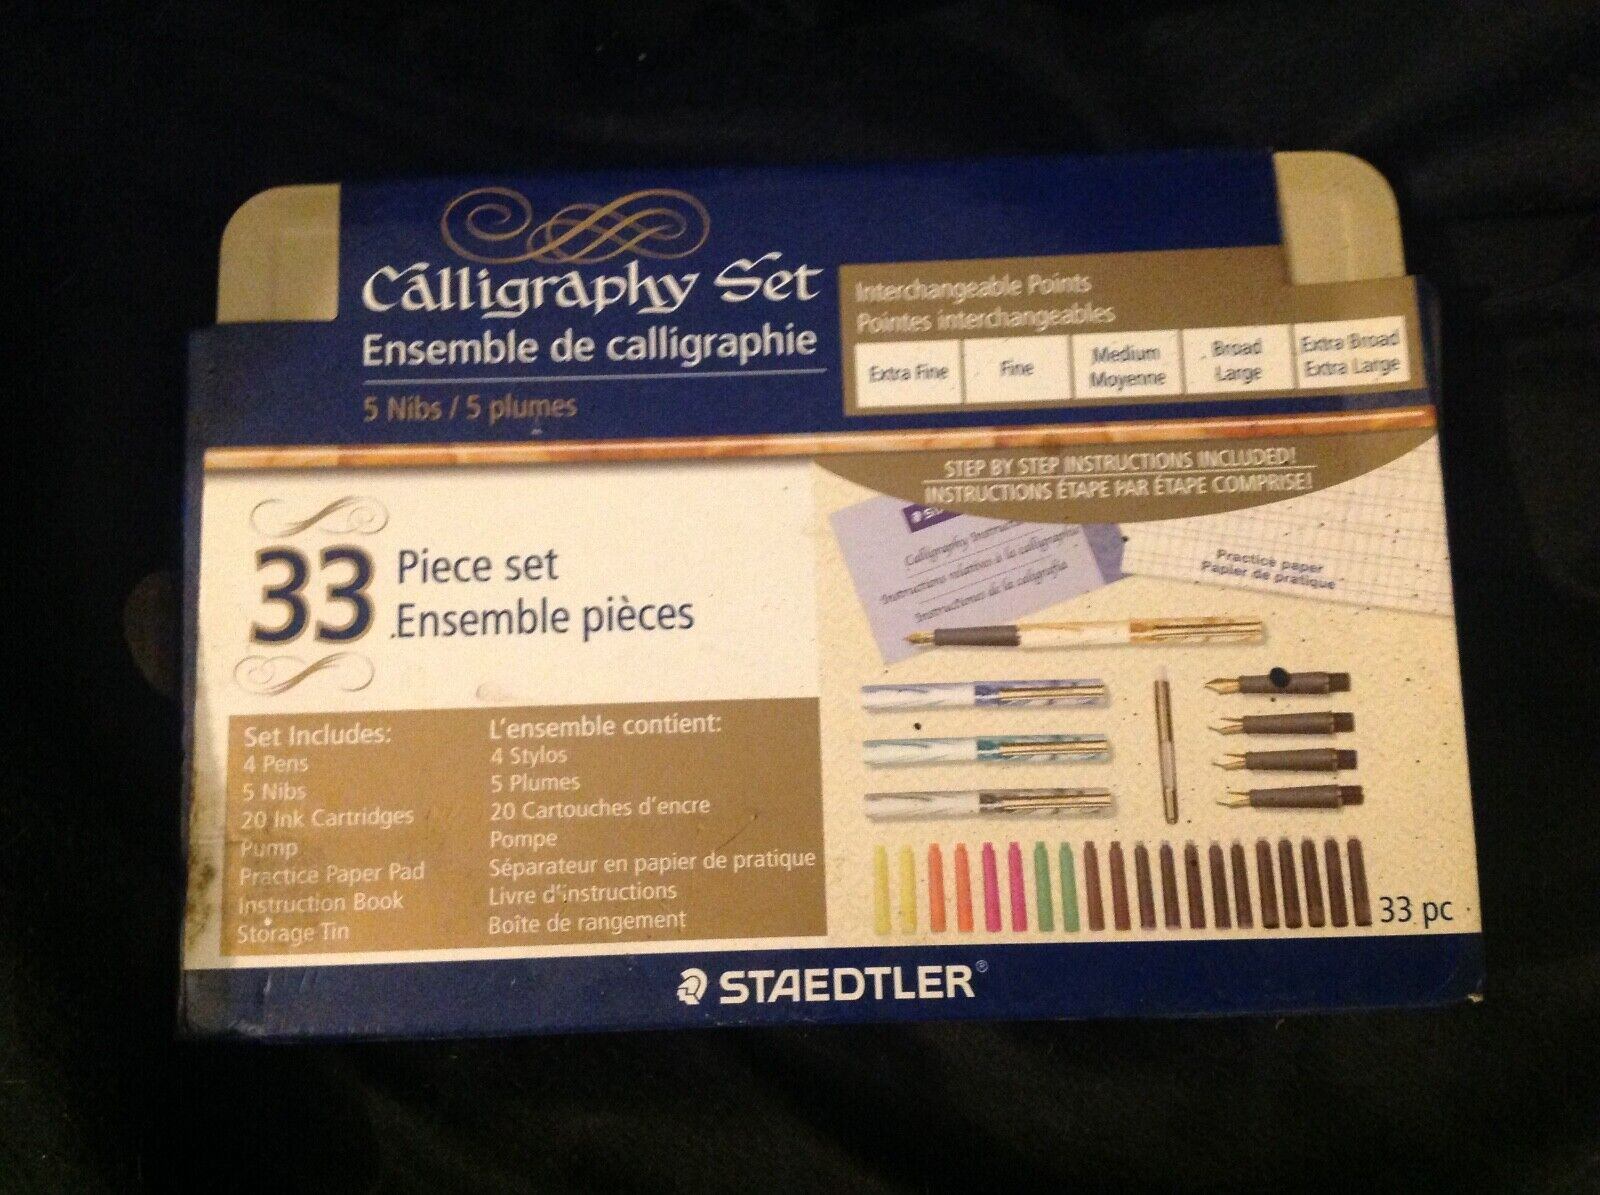 Staedtler Calligraphy 33 Piece Set - 4 Pens - 5 Nibs - 20 Ink Cartridges - $27.00